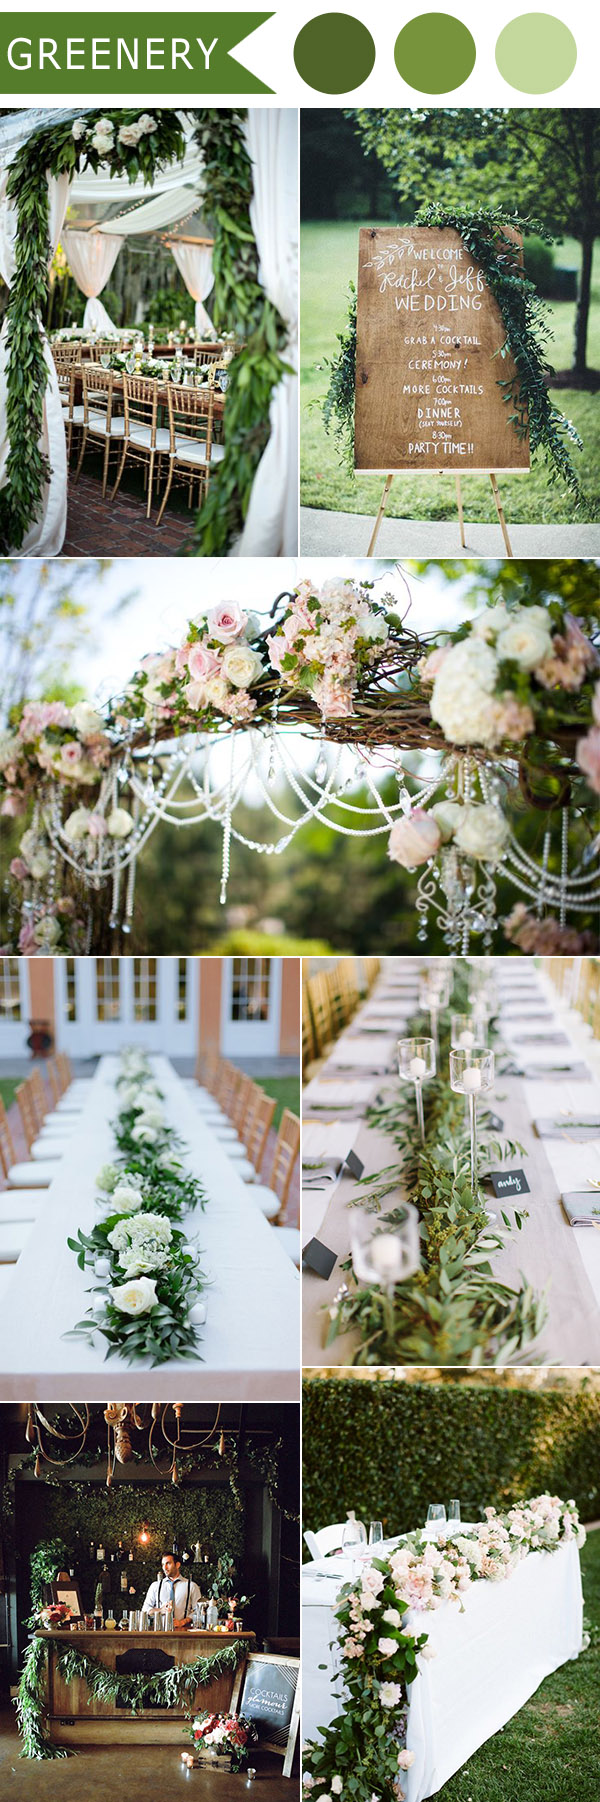 2016 trending greenery natural lush wedding ideas